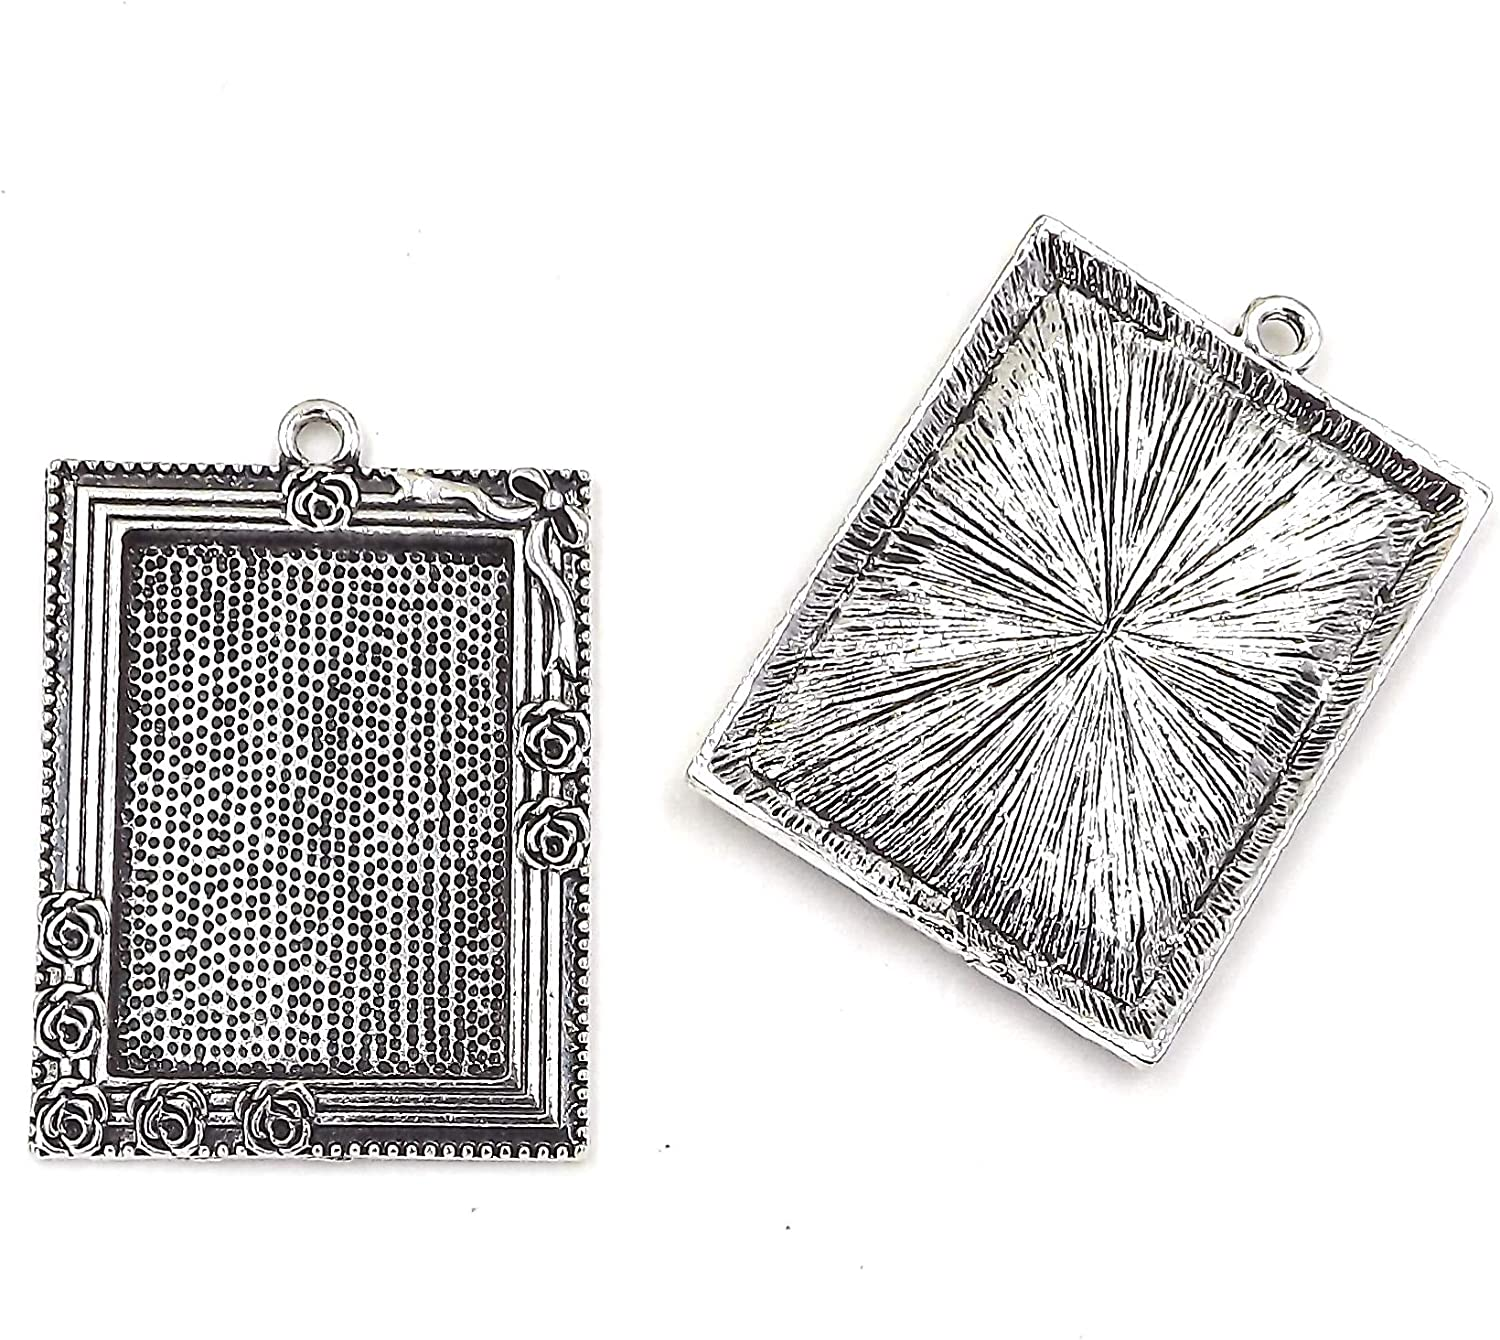 25X35mm Rose Frame Pendant Tray in Antique Silver with glass